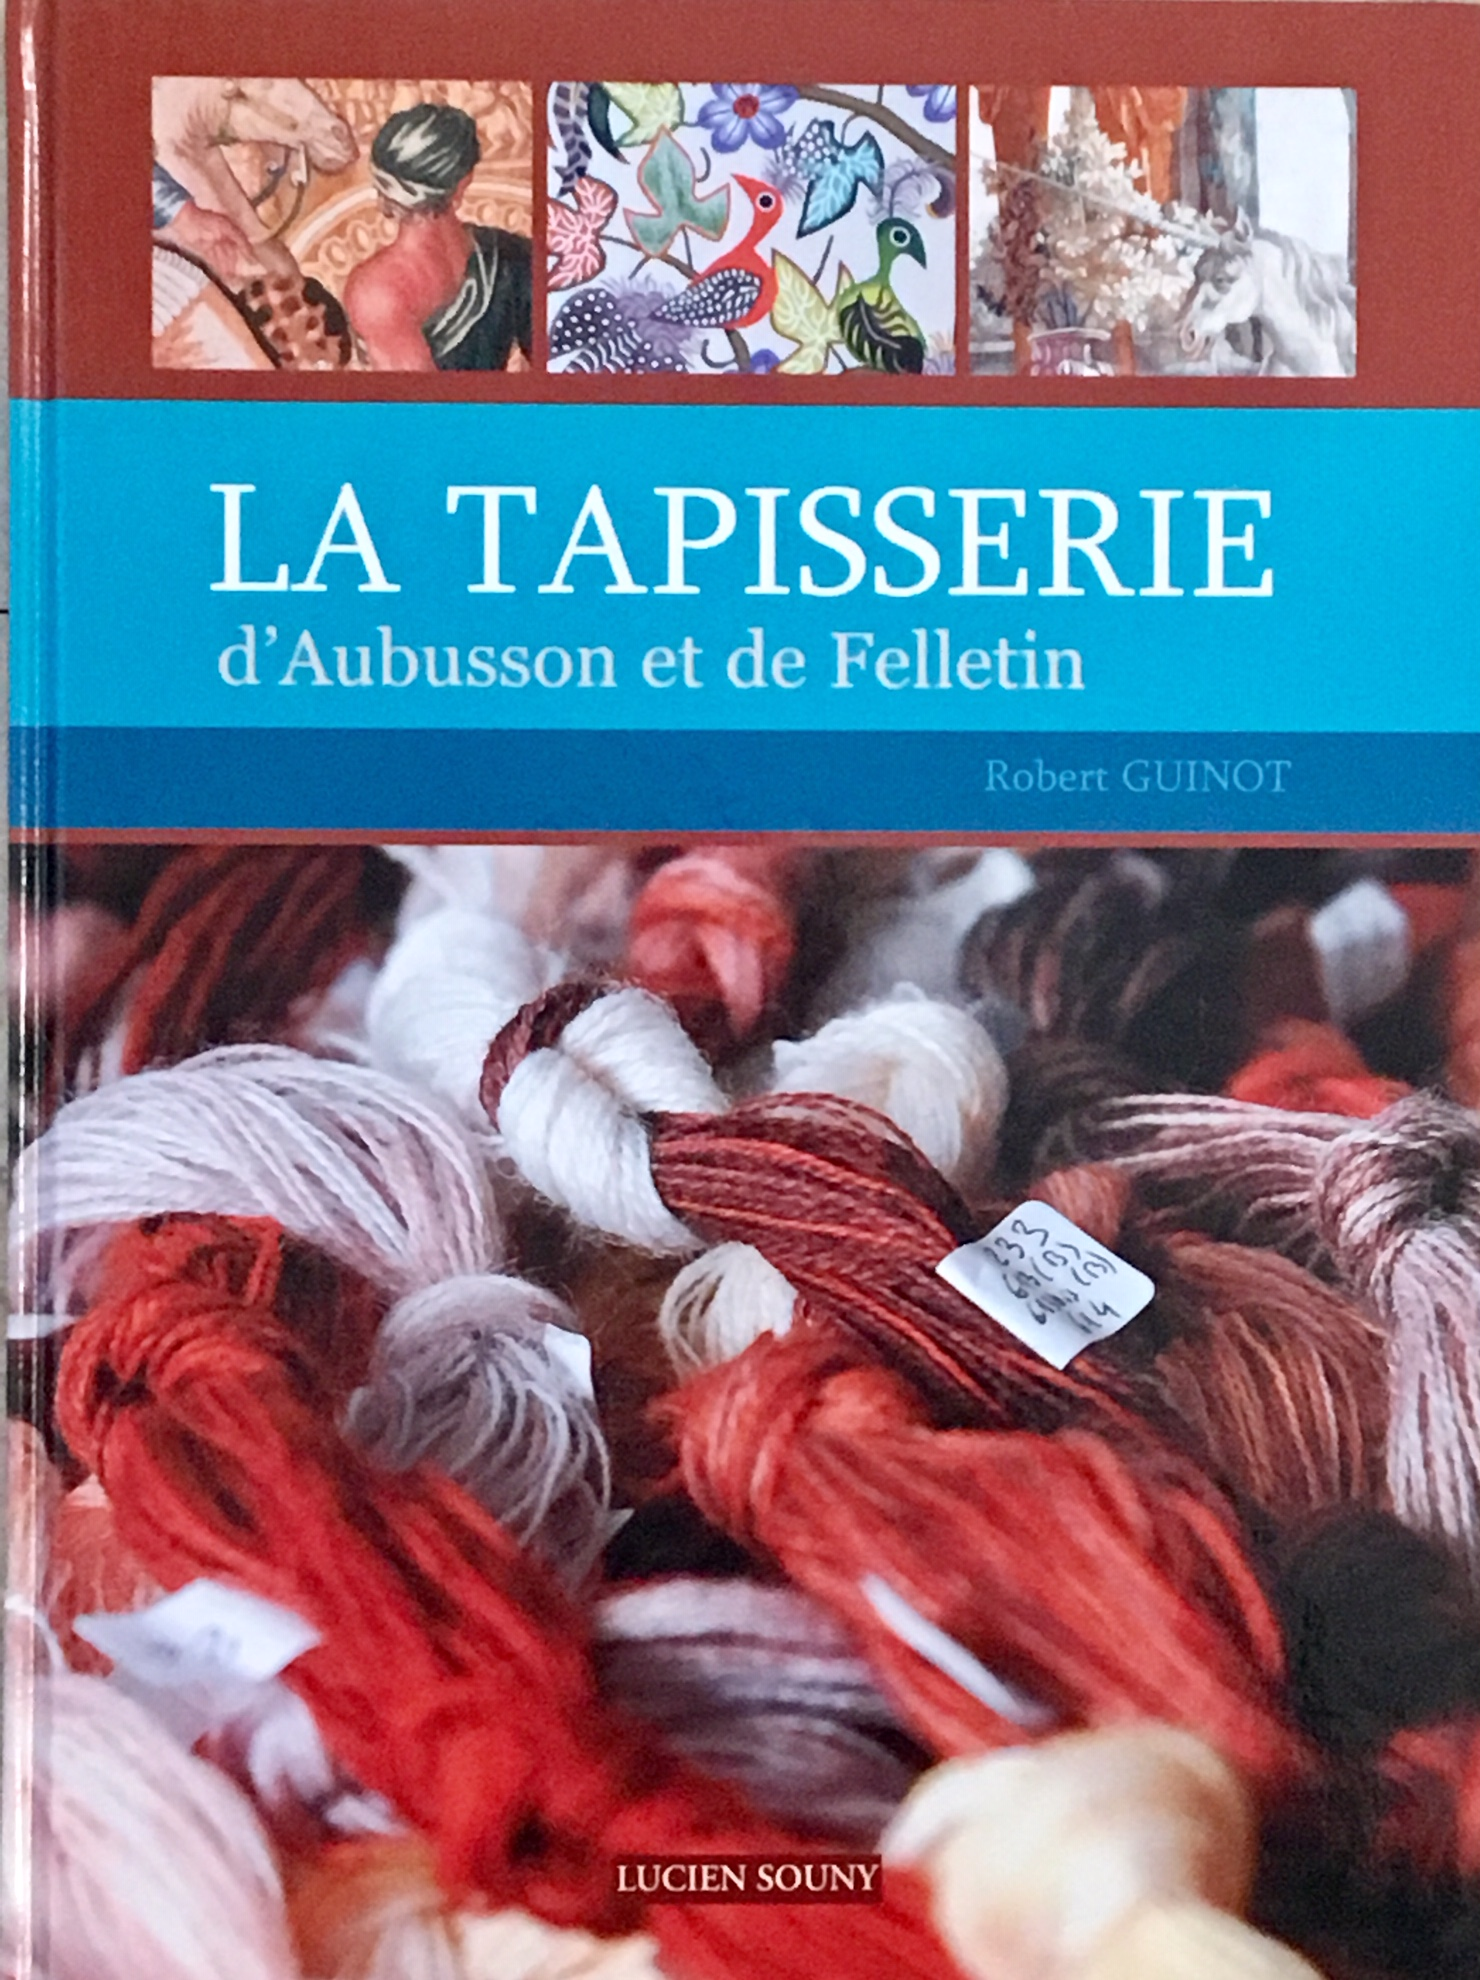 An in-depth book on the history of tapestry in Aubusson and Felletin by Robert Guinot, Editions Lucien Souny, 2009.